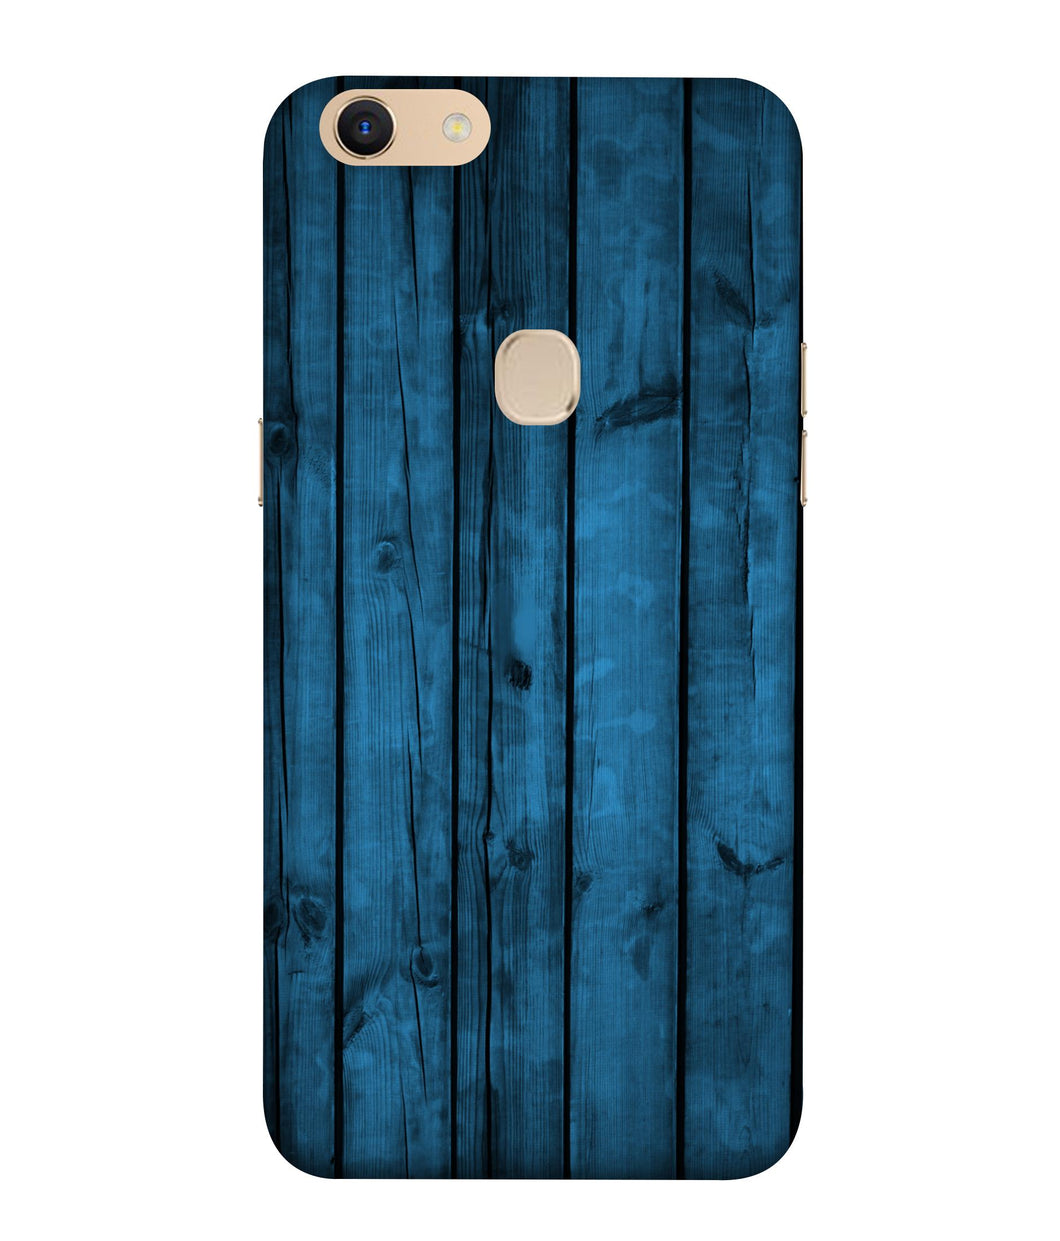 Oppo F5 Plus Bluewoods mobile cover